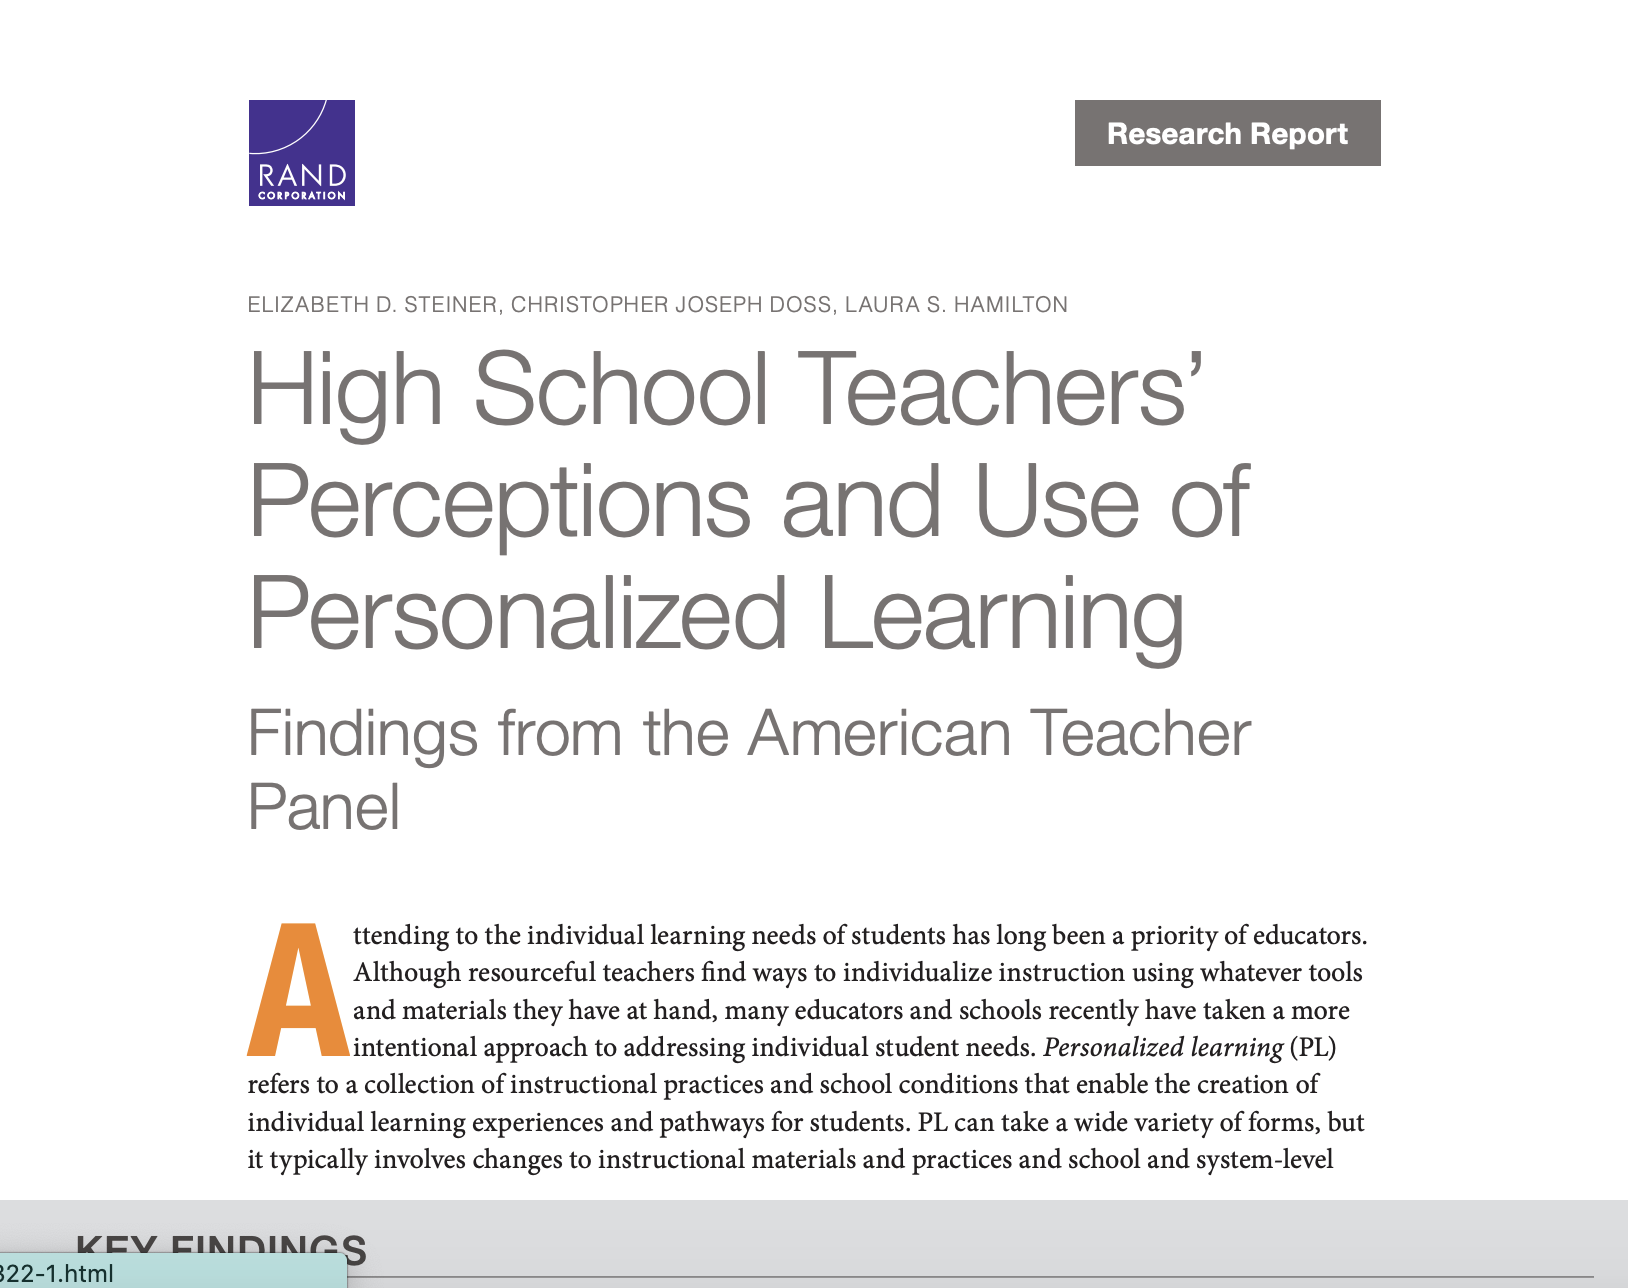 High School Teachers' Perceptions and Use of Personalized Learning Findings from the American Teacher Panel